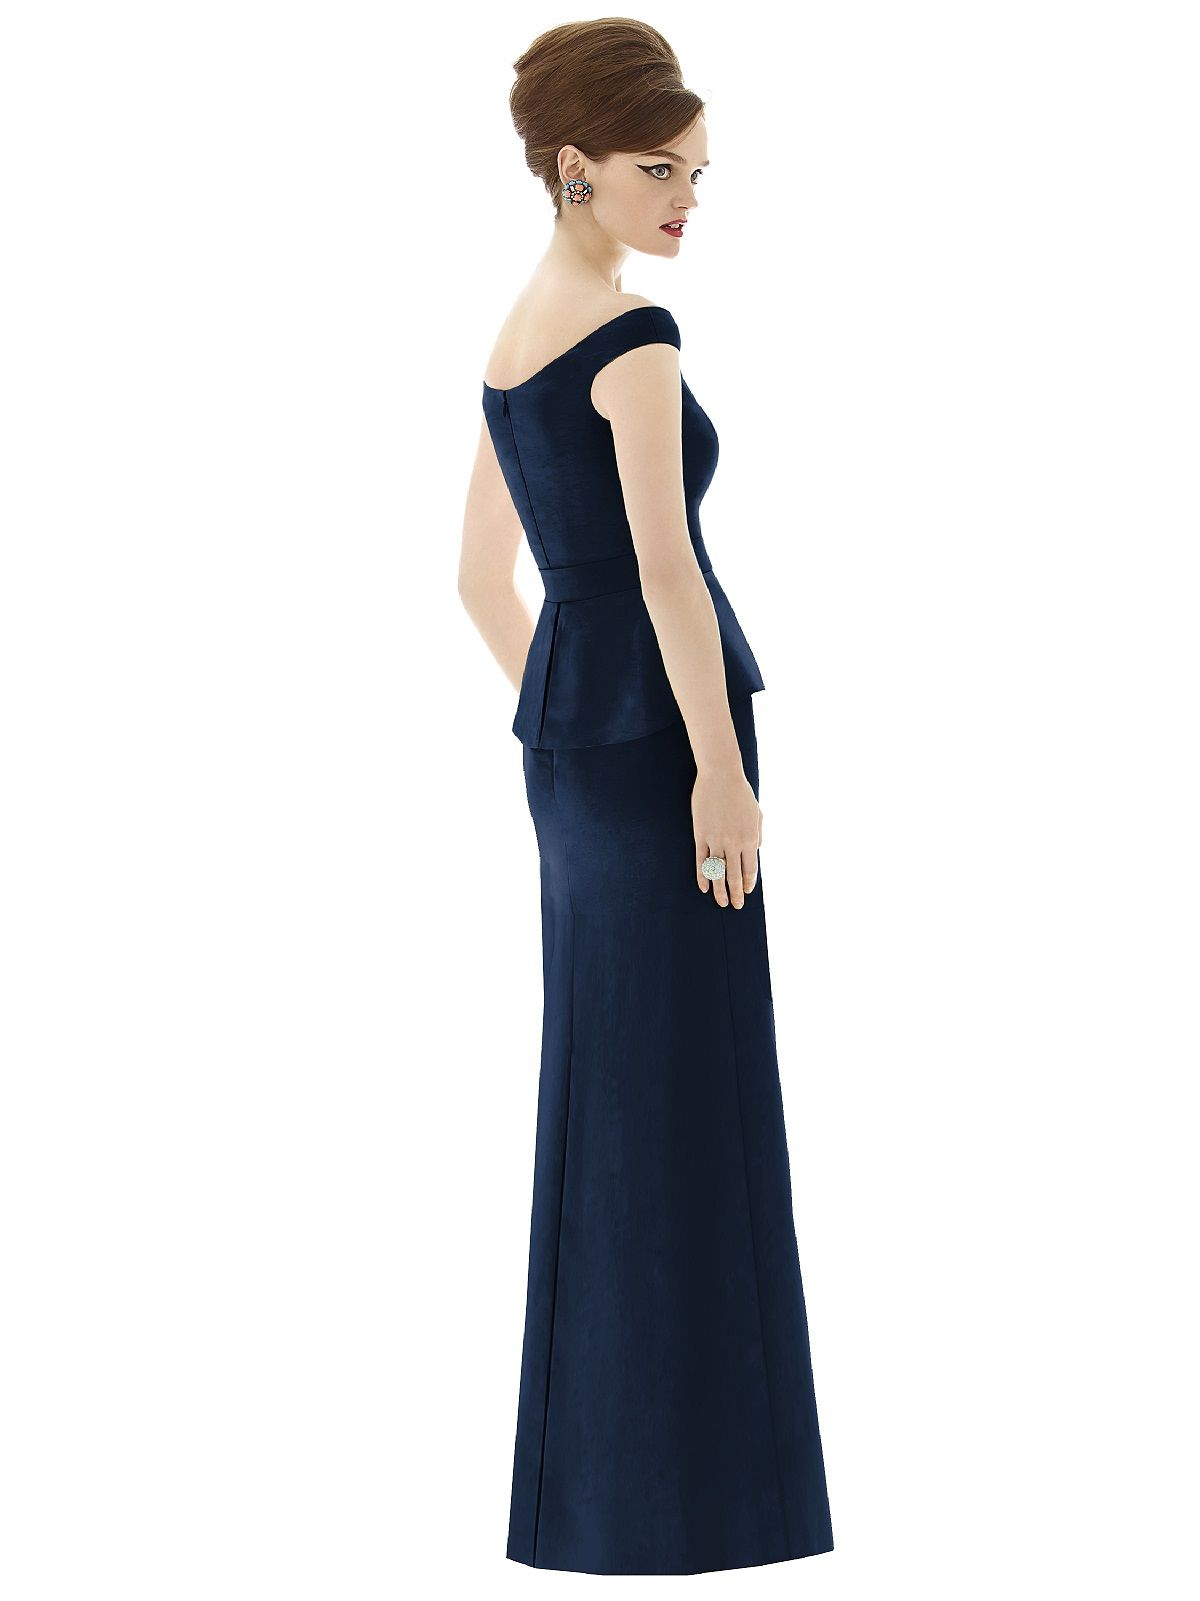 Midnight blue bridesmaid dress with peplum right on trend alfred